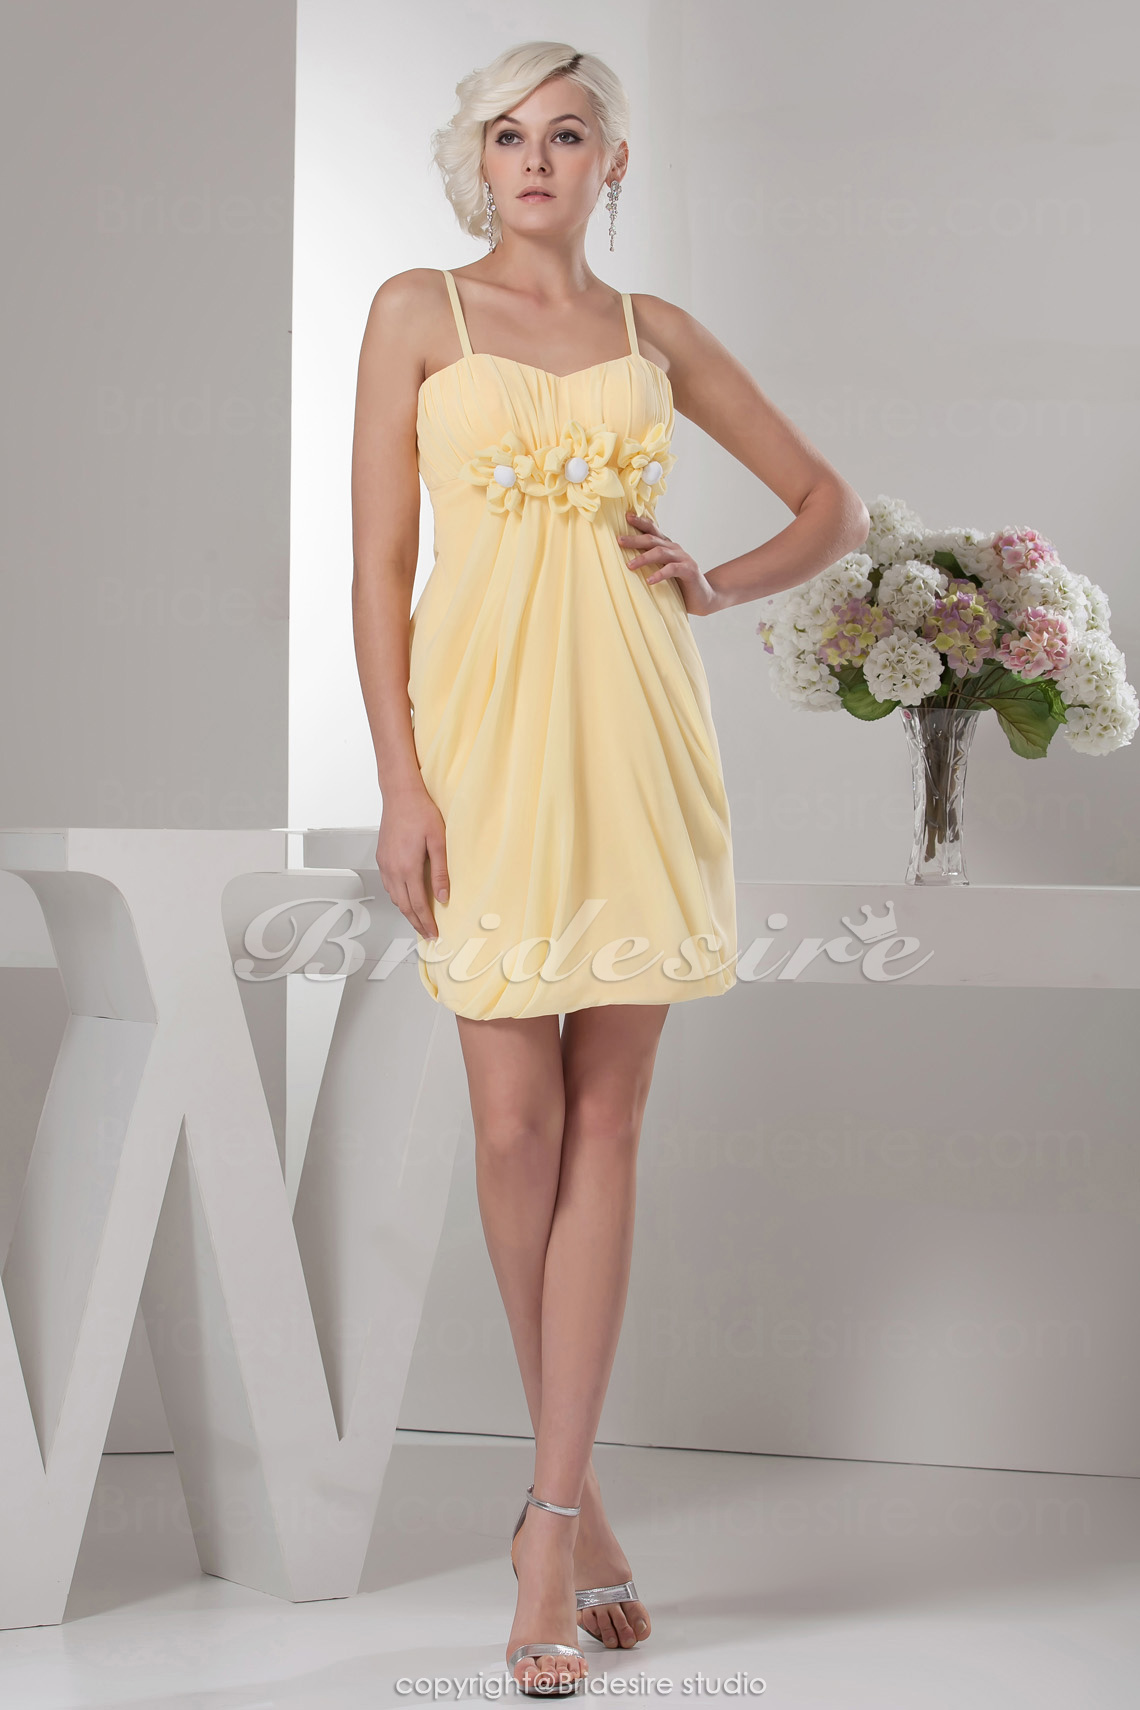 Sheath/Column Spaghetti Straps Knee-length Sleeveless Chiffon Bridesmaid Dress